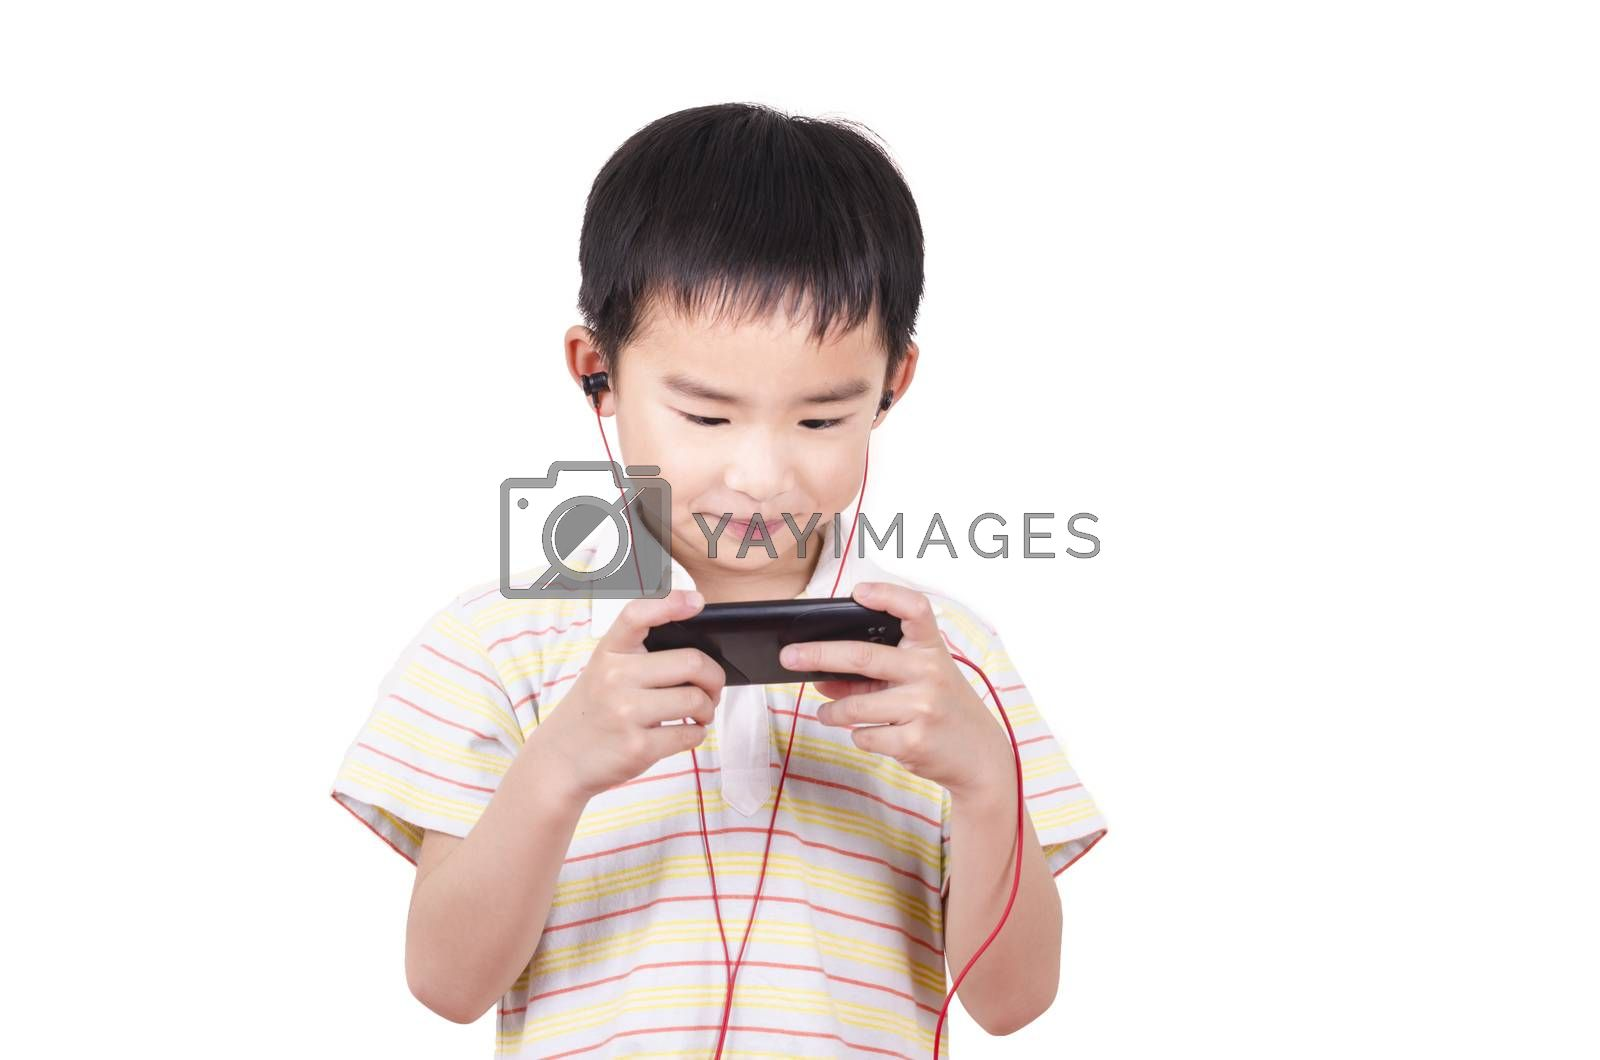 Royalty free image of Cute children listen to music by FrankyLiu